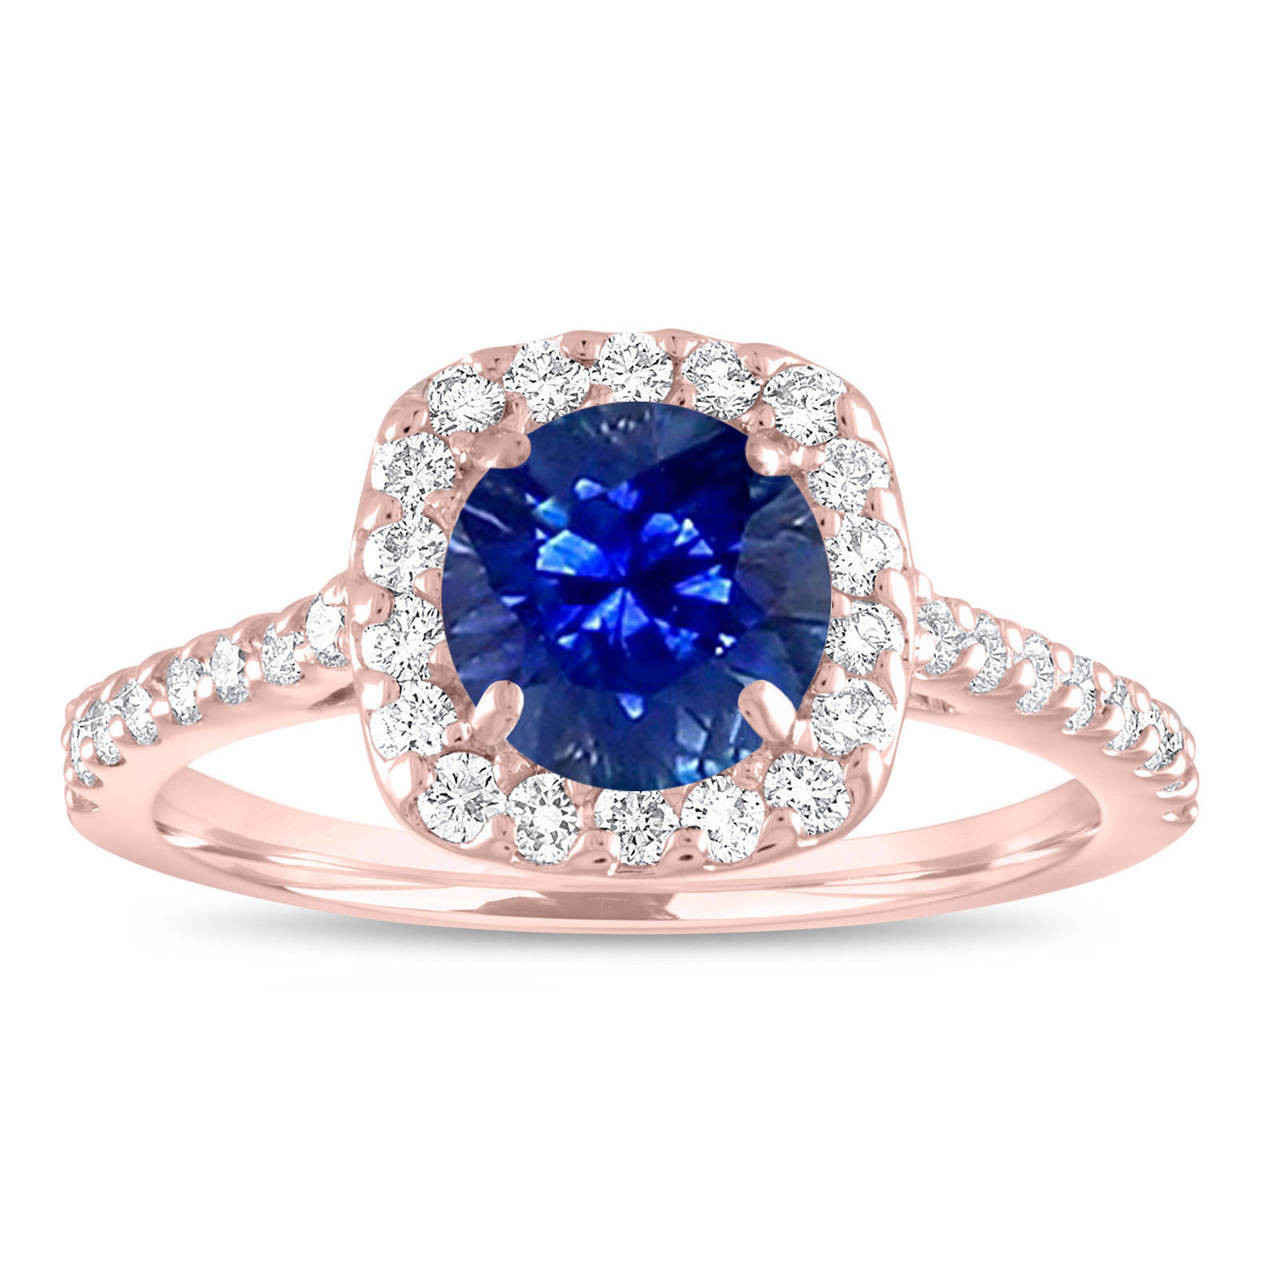 Sapphire Engagement Ring Rose Gold Sapphire And Diamonds Bridal